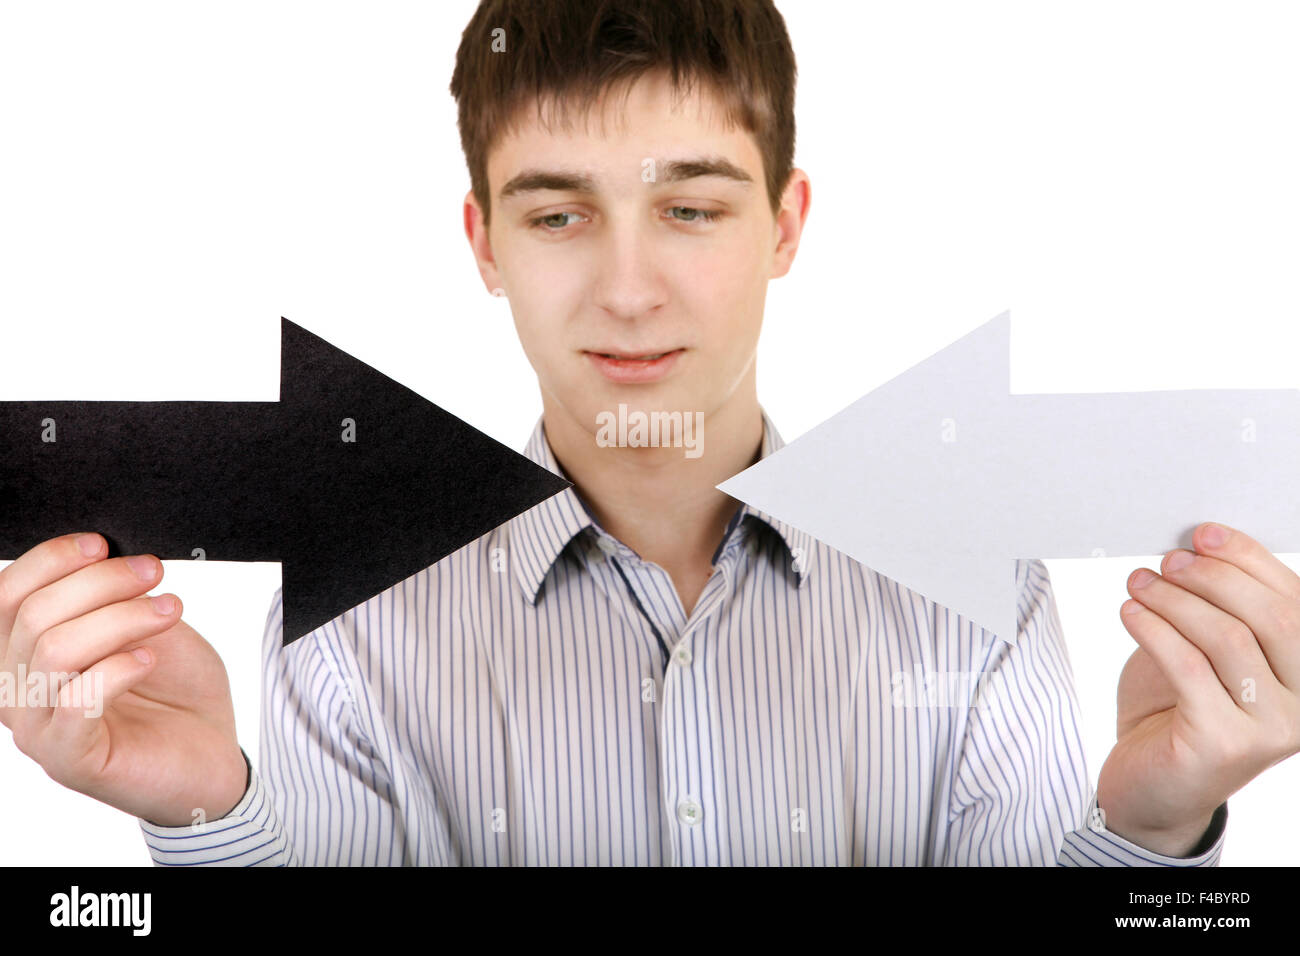 Teenager with Two Arrows - Stock Image